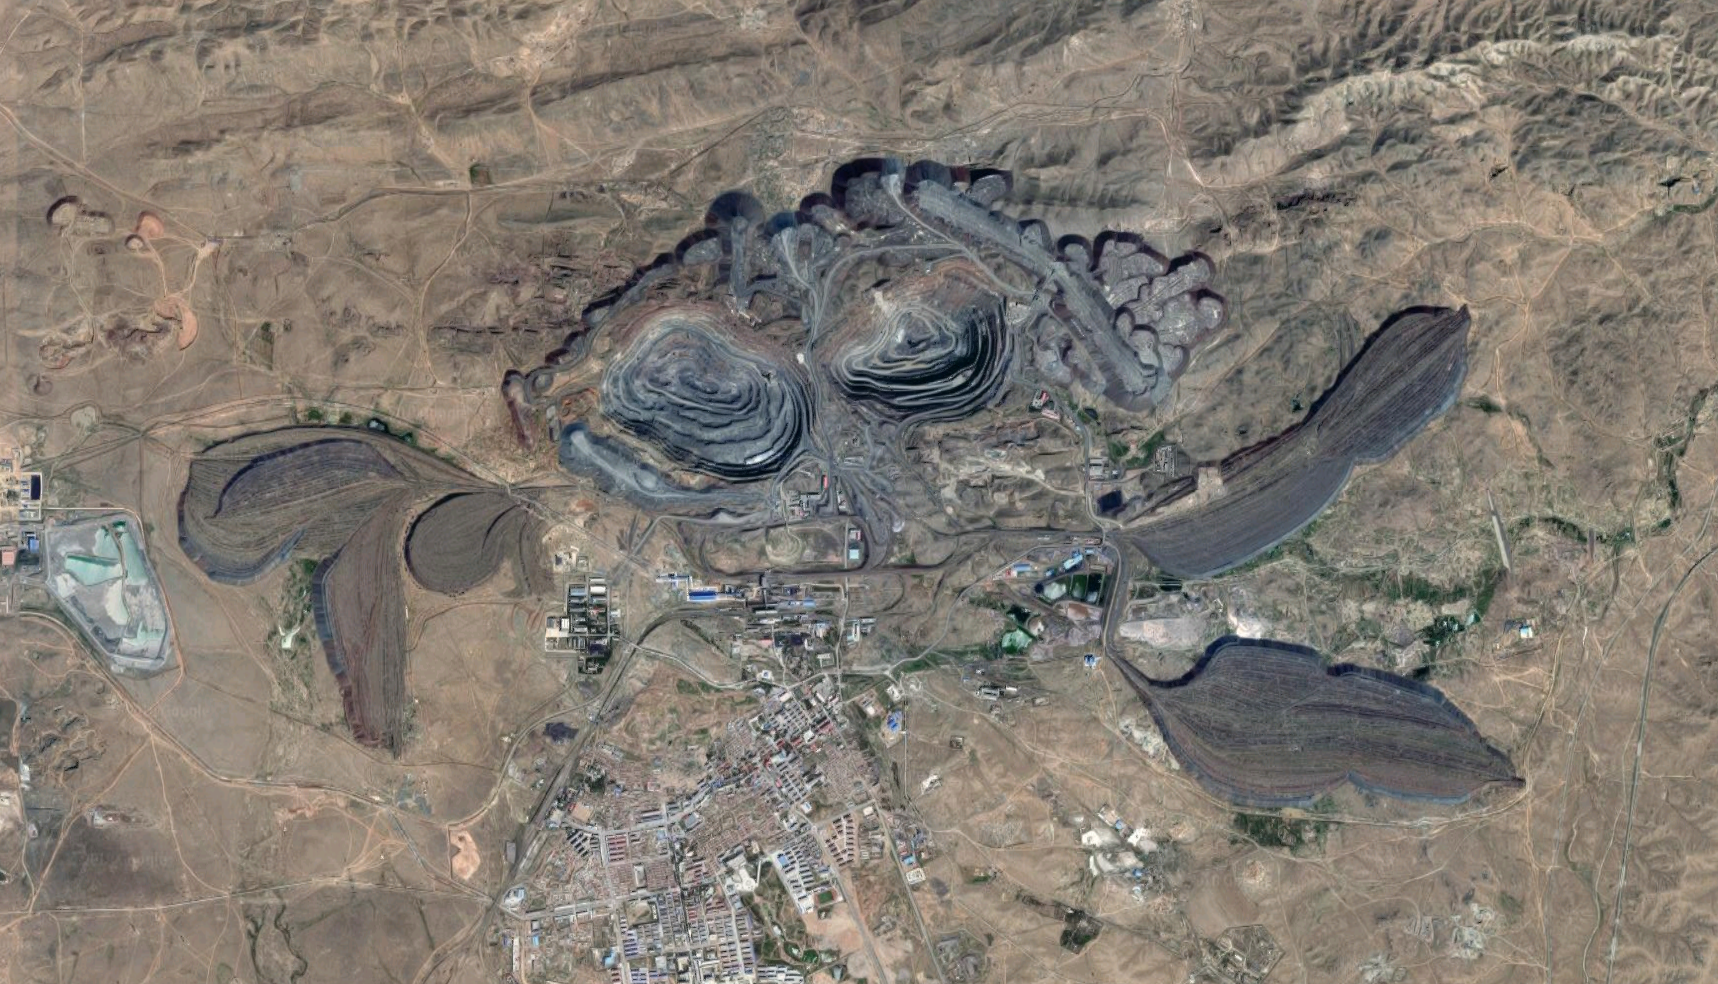 Bayan Obo Mining District as seen from Satellite (2018)